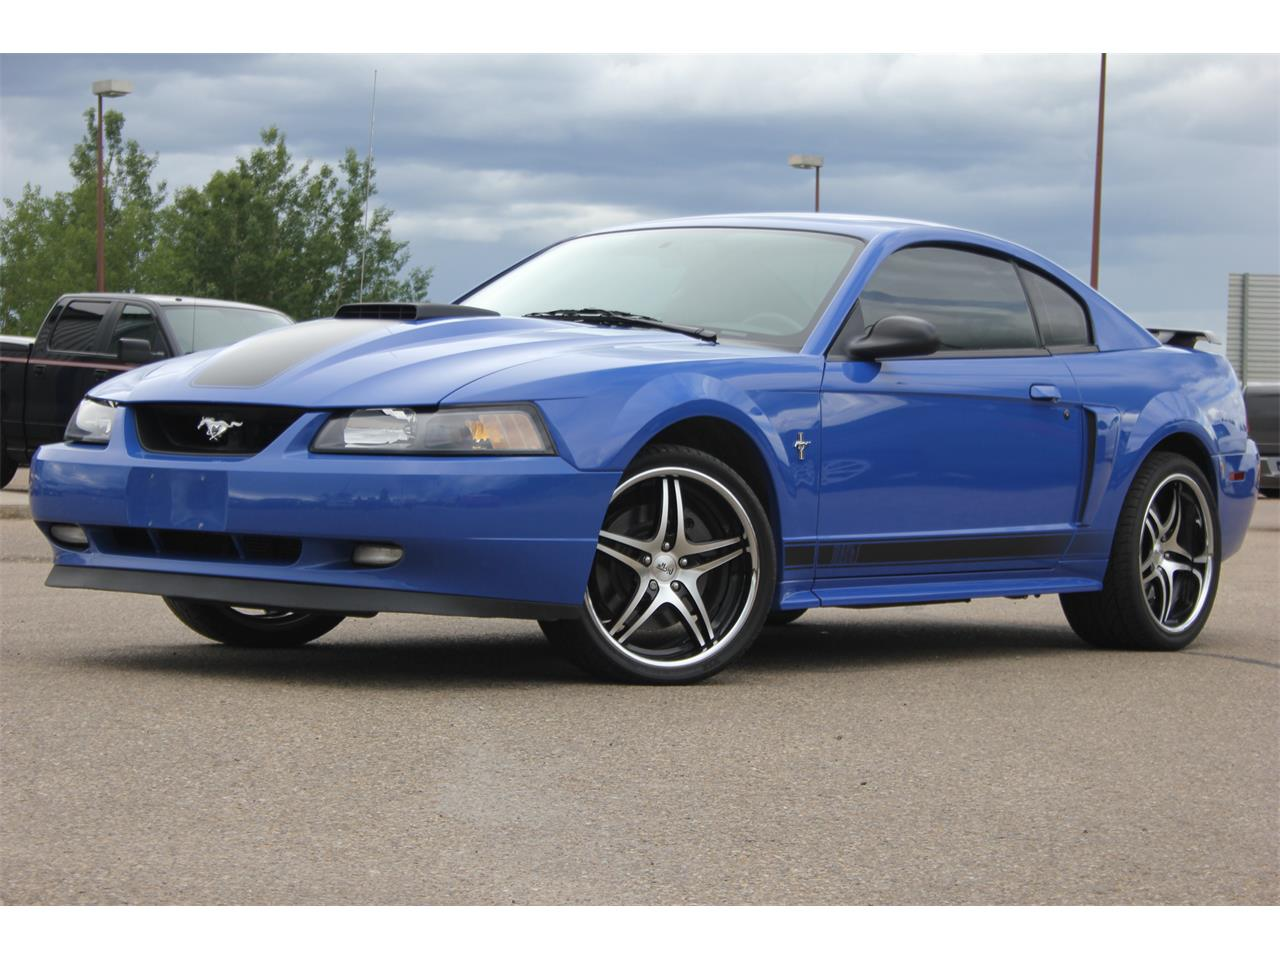 Large Picture of 2003 Mustang Mach 1 located in Sylvan Lake Alberta - $19,900.00 Offered by Adrenalin Motors - LAXP